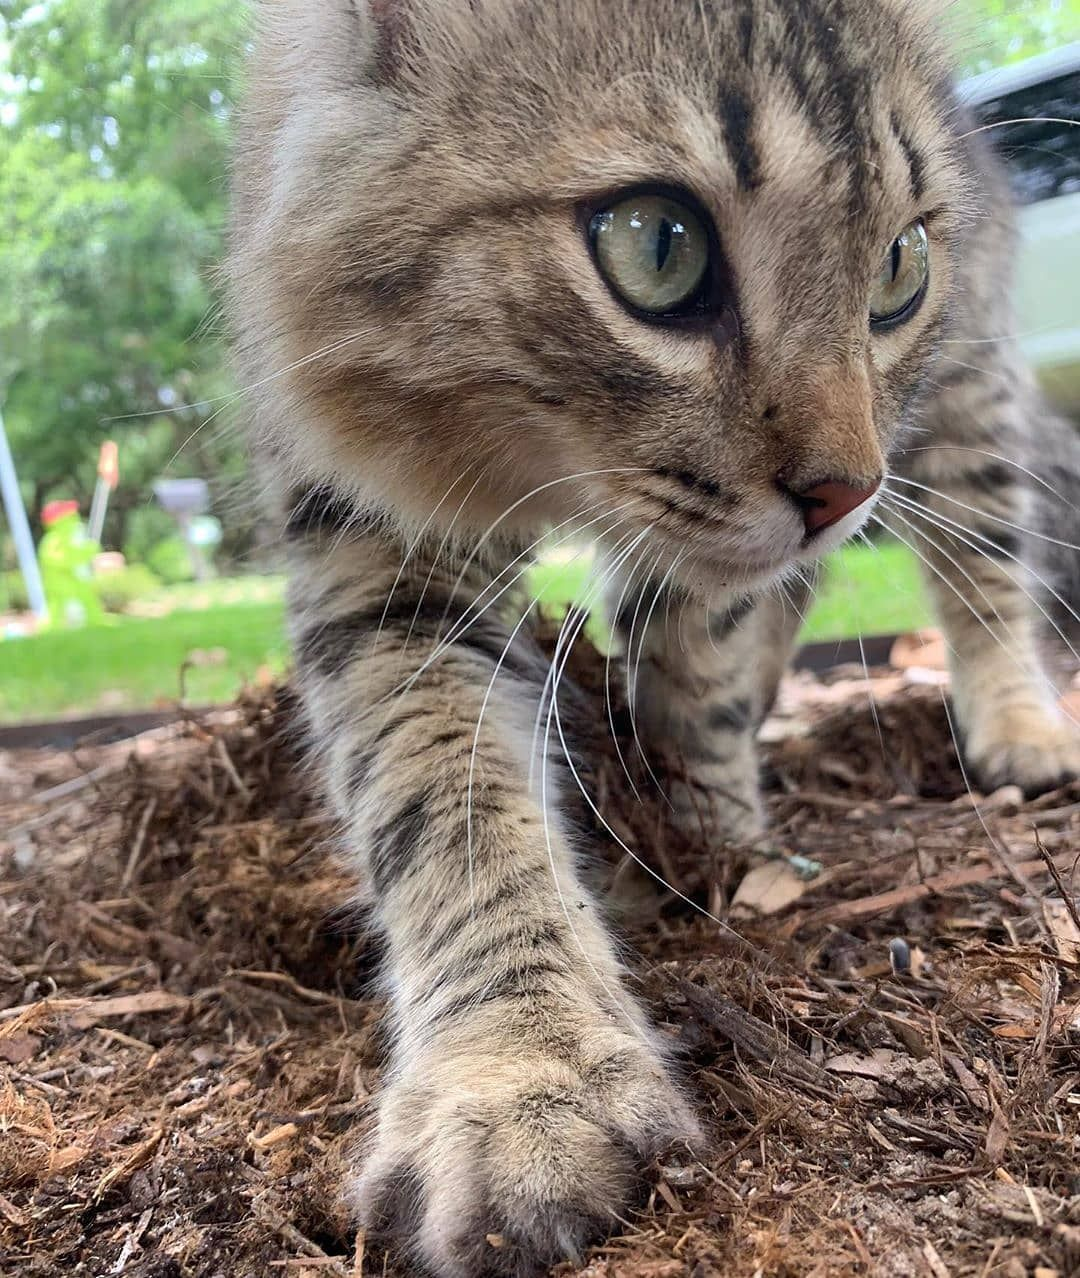 I M Hunting Go Check Him Out The French Kat Follow Cute Cats70 For More Pictures Allcatphotos300 Lovelycaton Cat Online Cats Beautiful Cats